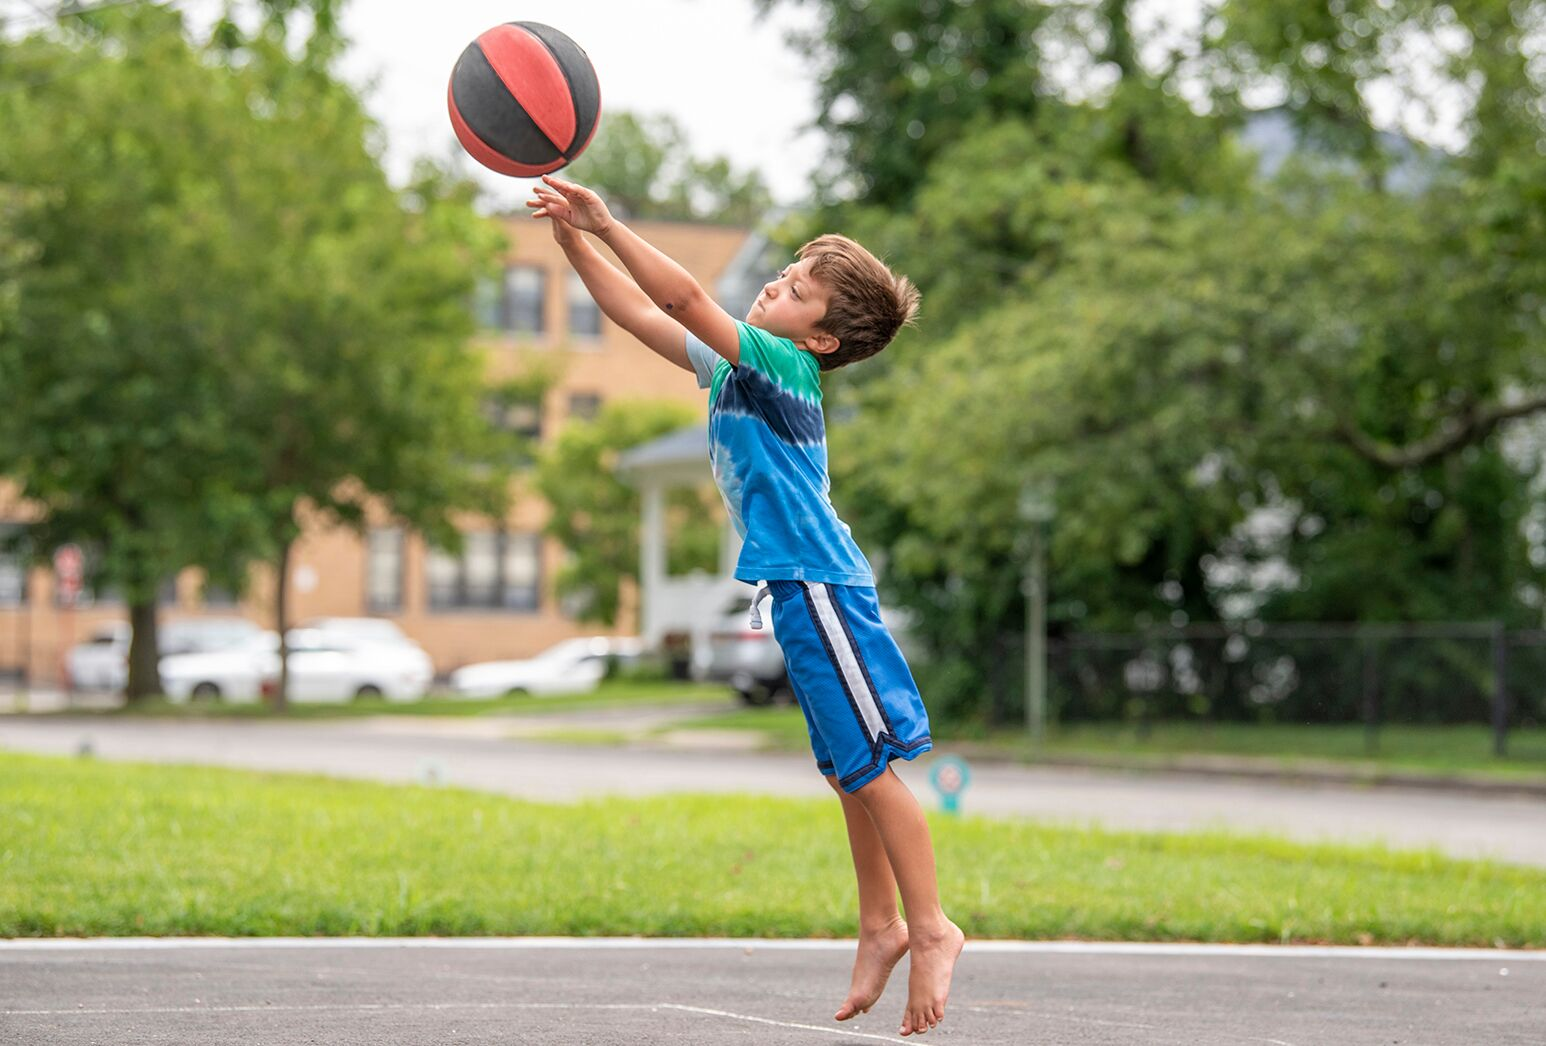 Barefoot little boy in blue shorts and top shooting a basketball.